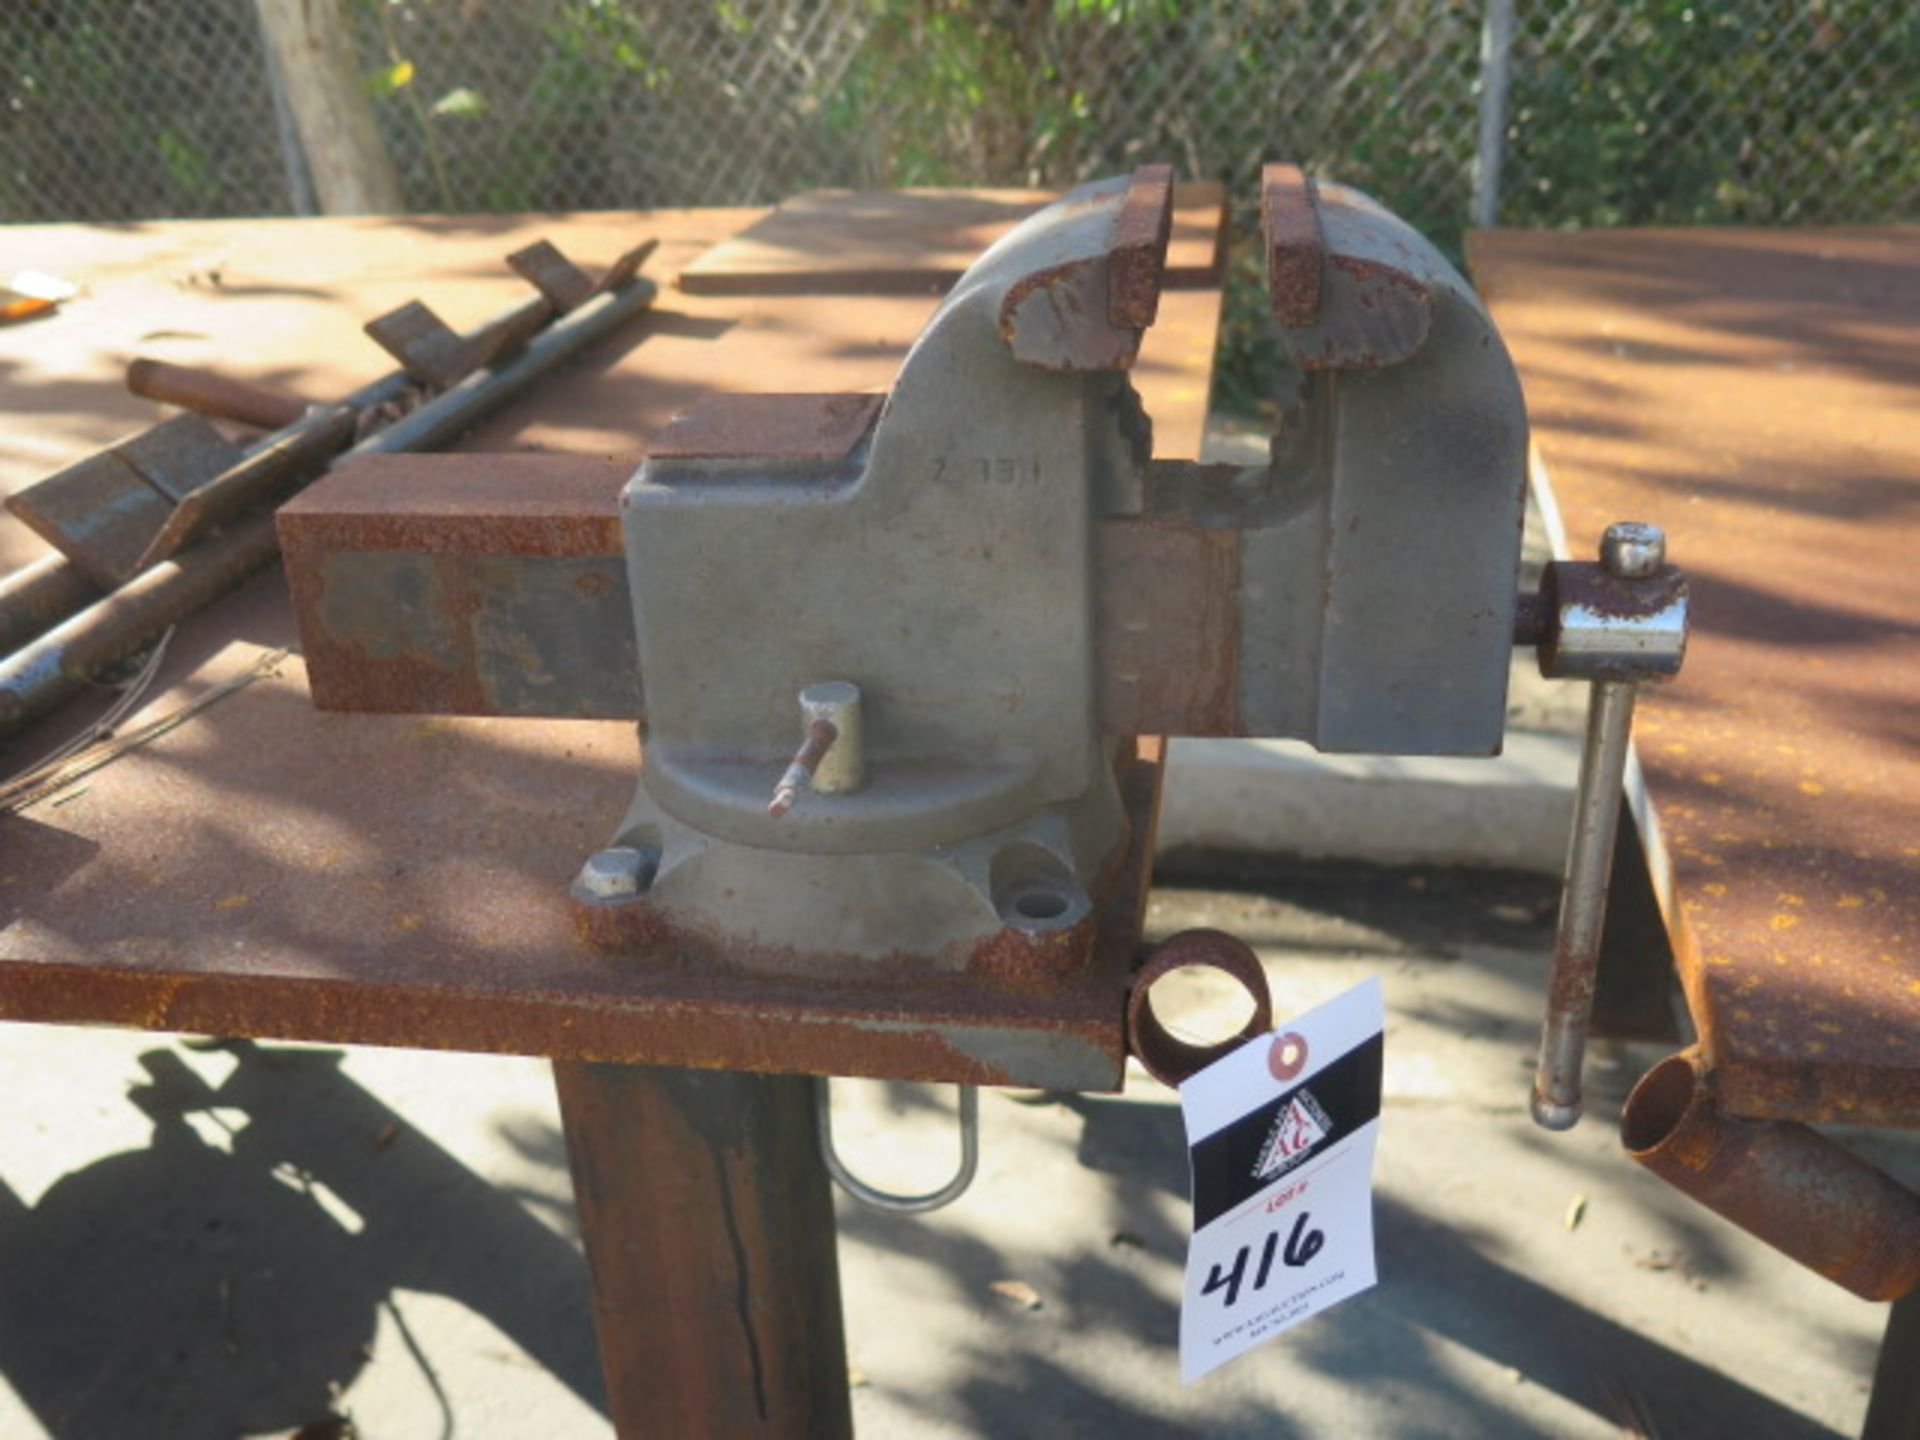 """5' x 5' x 1"""" Steel Welding Table w/ Wilton 6"""" Bench Vise (SOLD AS-IS - NO WARRANTY) - Image 7 of 8"""